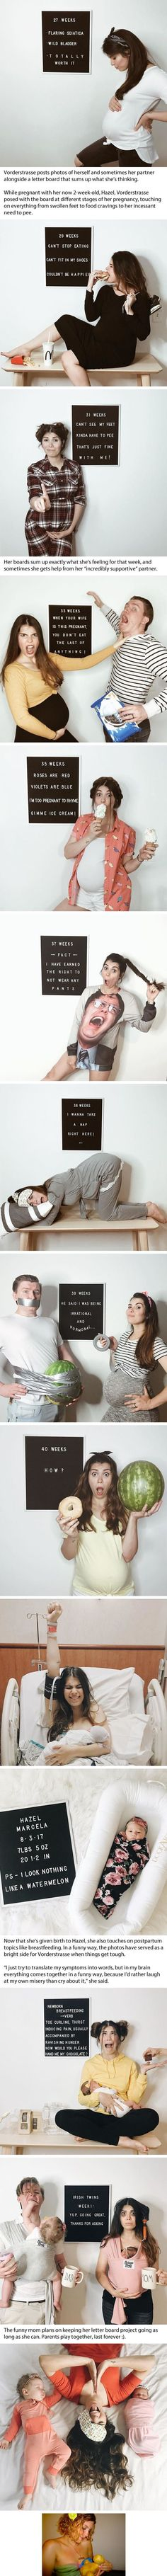 Mother Creates Hilarious Pregnancy Photos With Letter Board Messages #pregnancy,